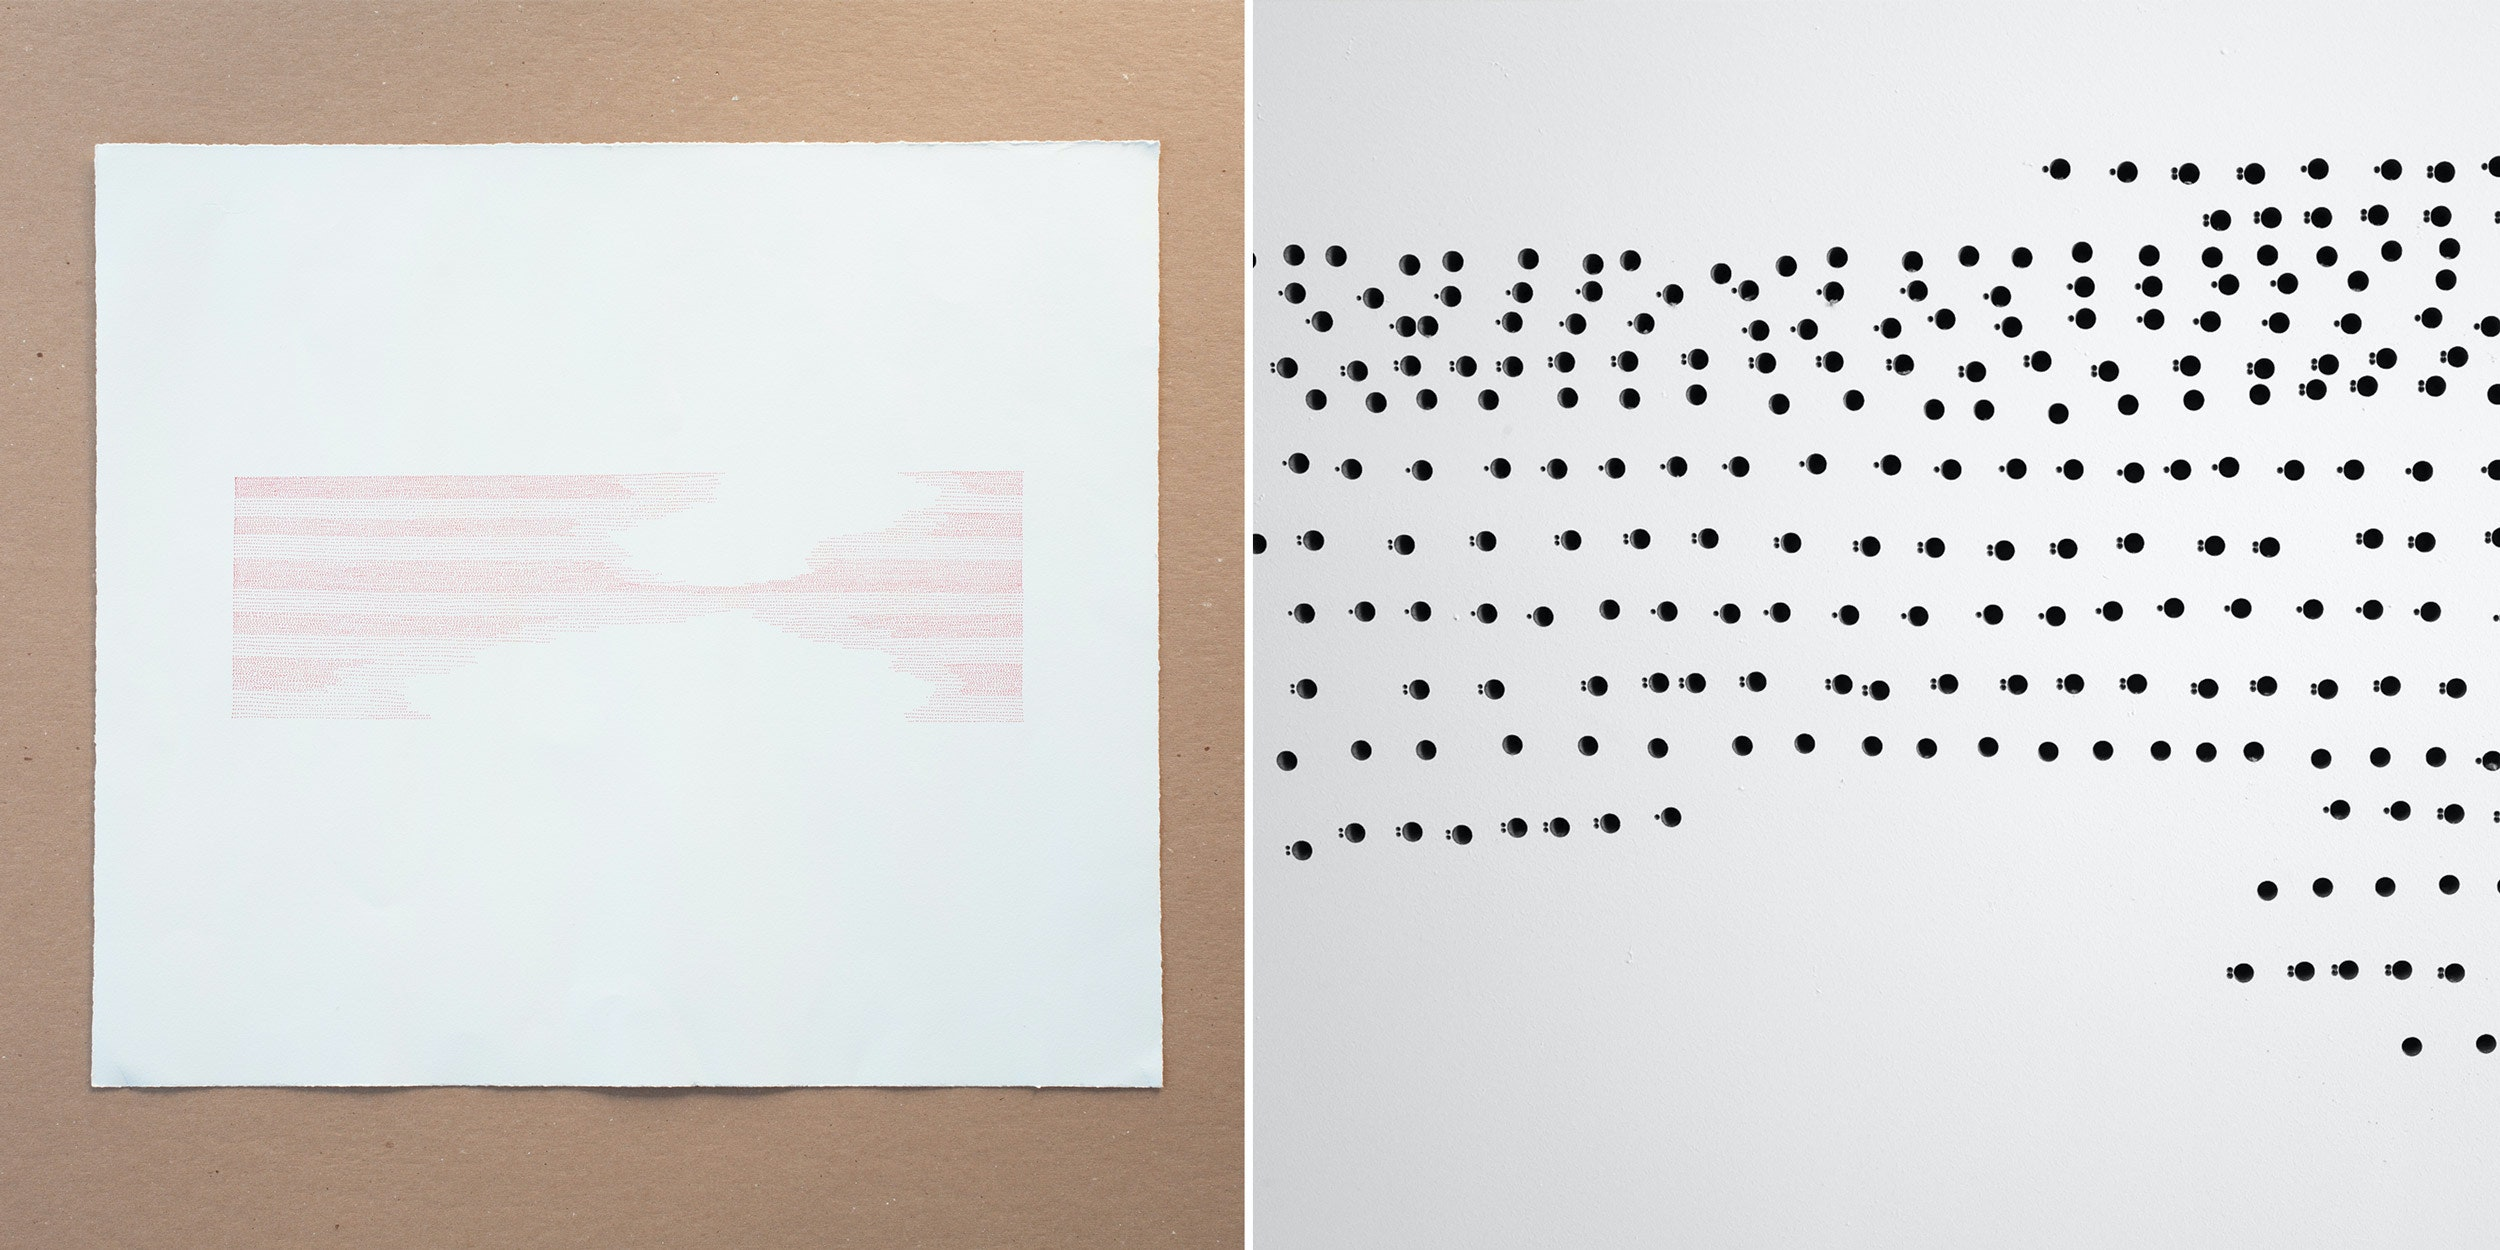 Drawing Dots For Mural